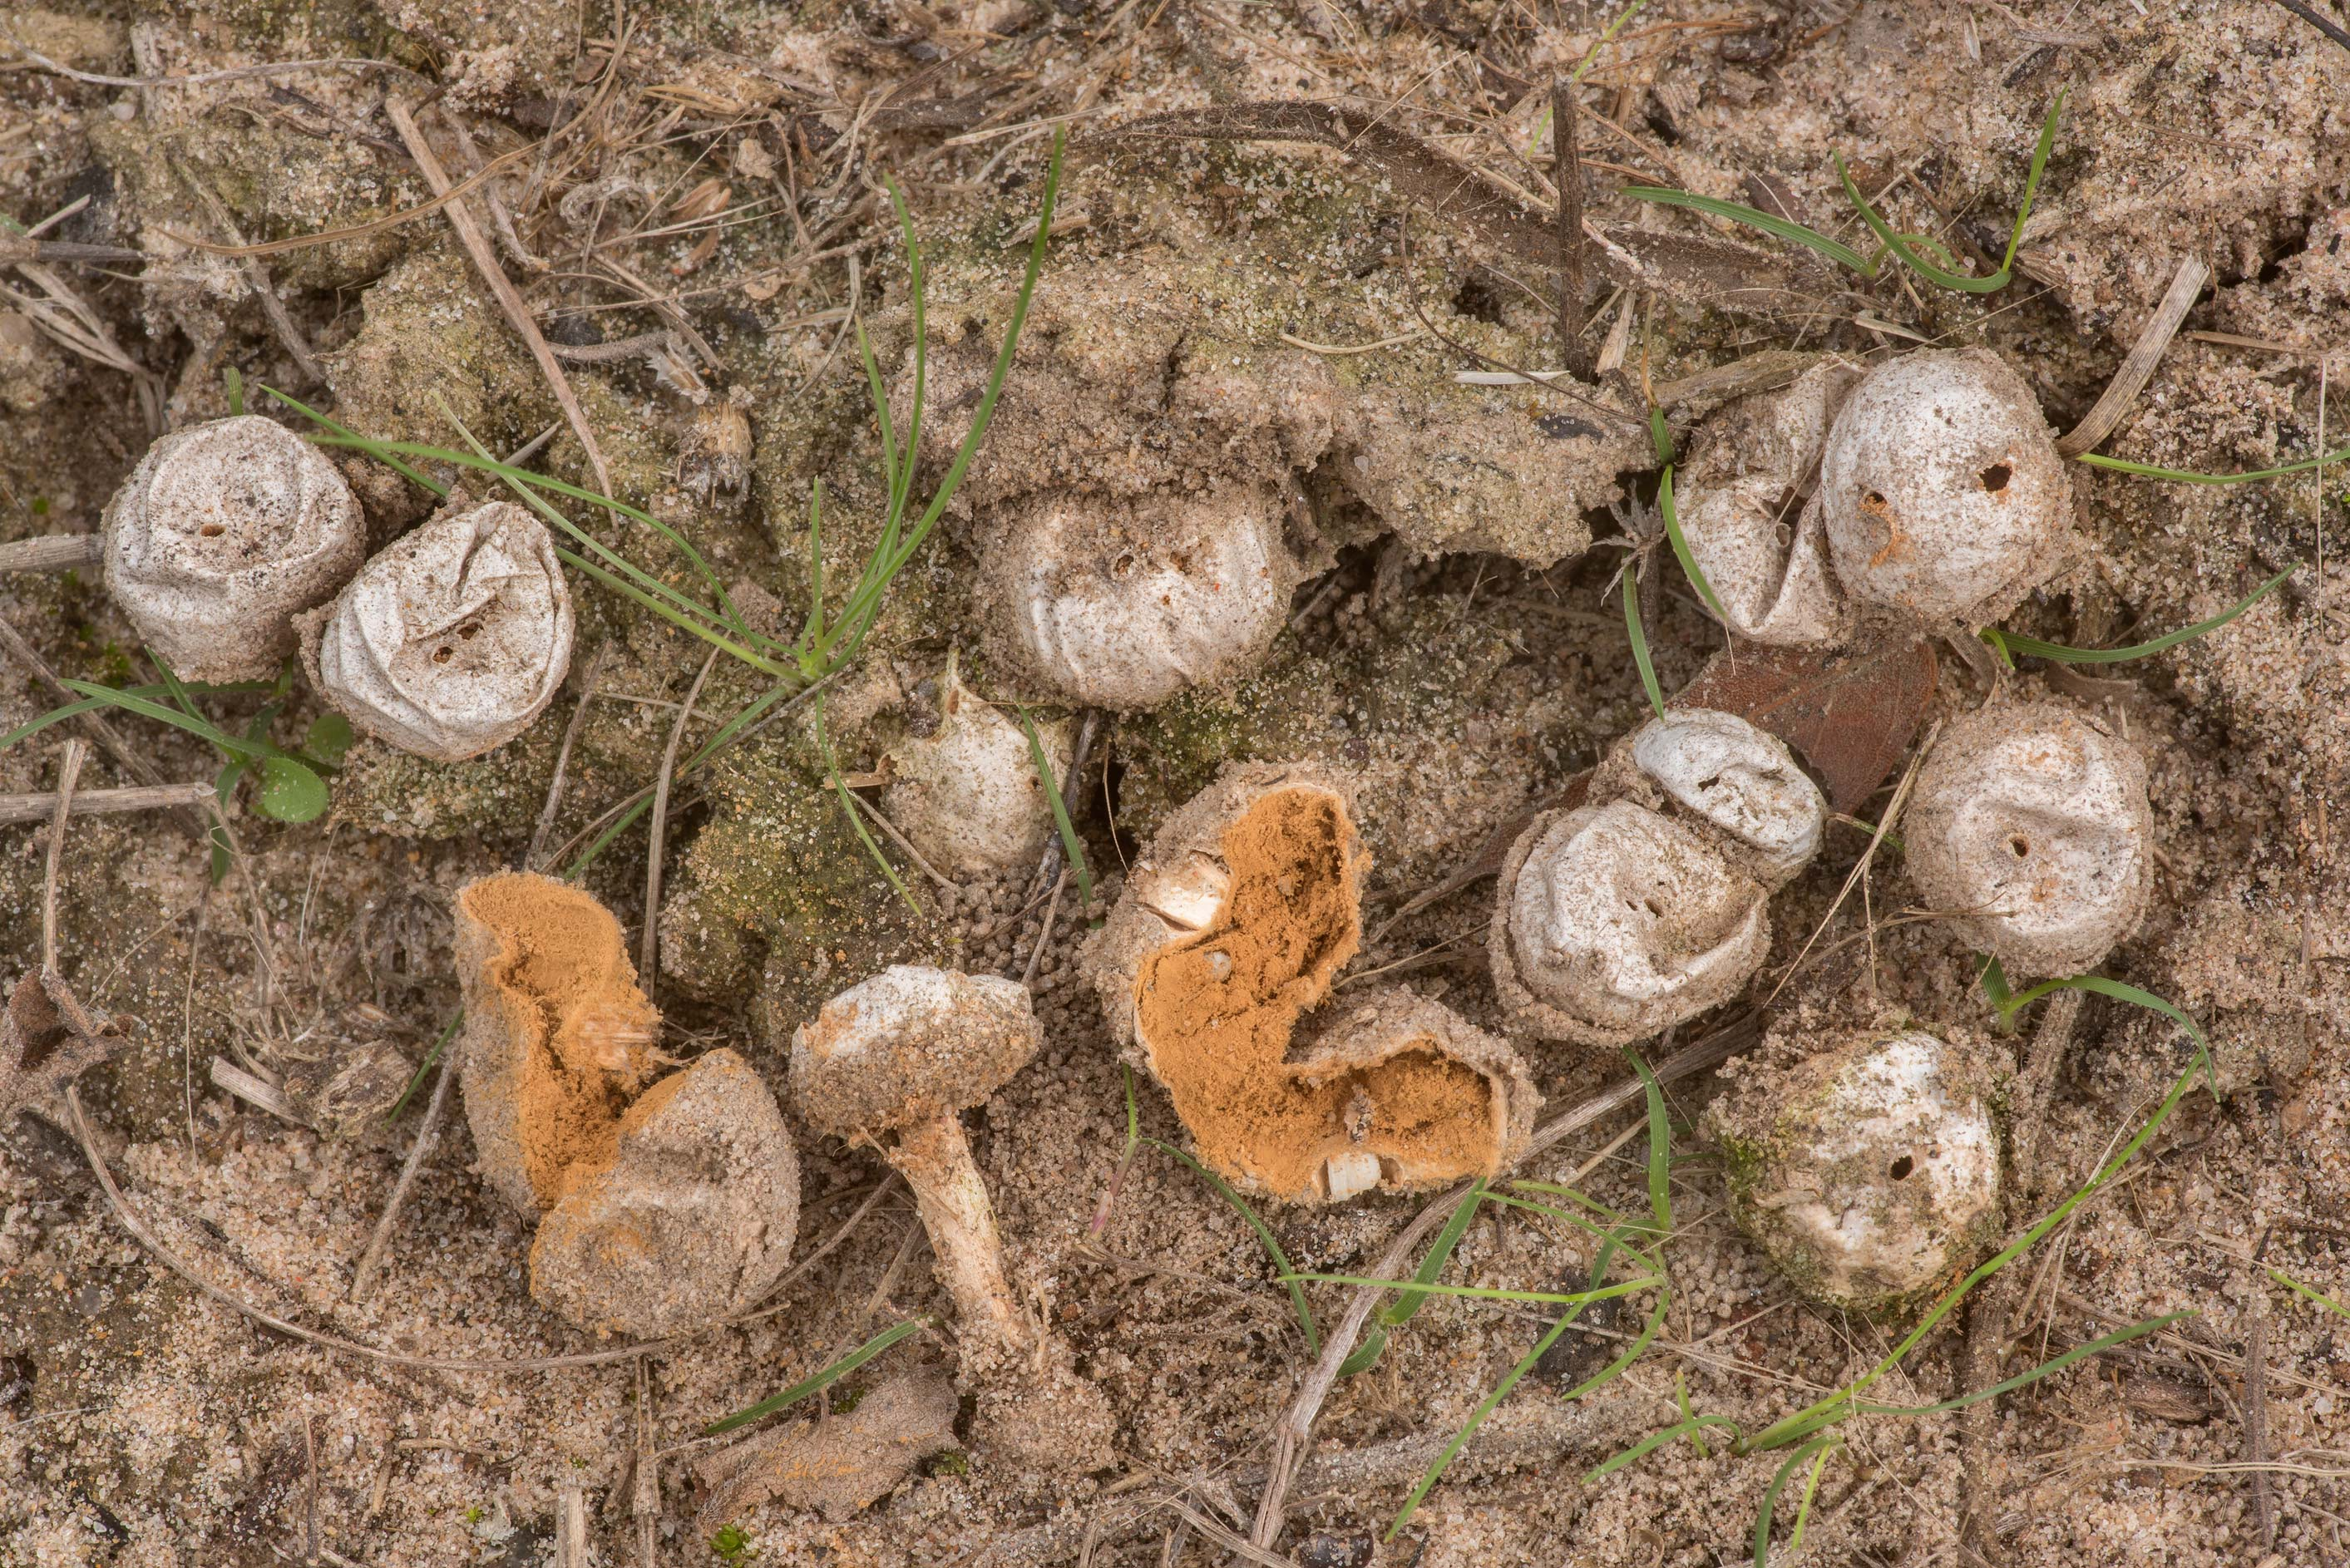 Masses of stalked puffball mushrooms Tulostoma...in Bastrop State Park. Bastrop, Texas